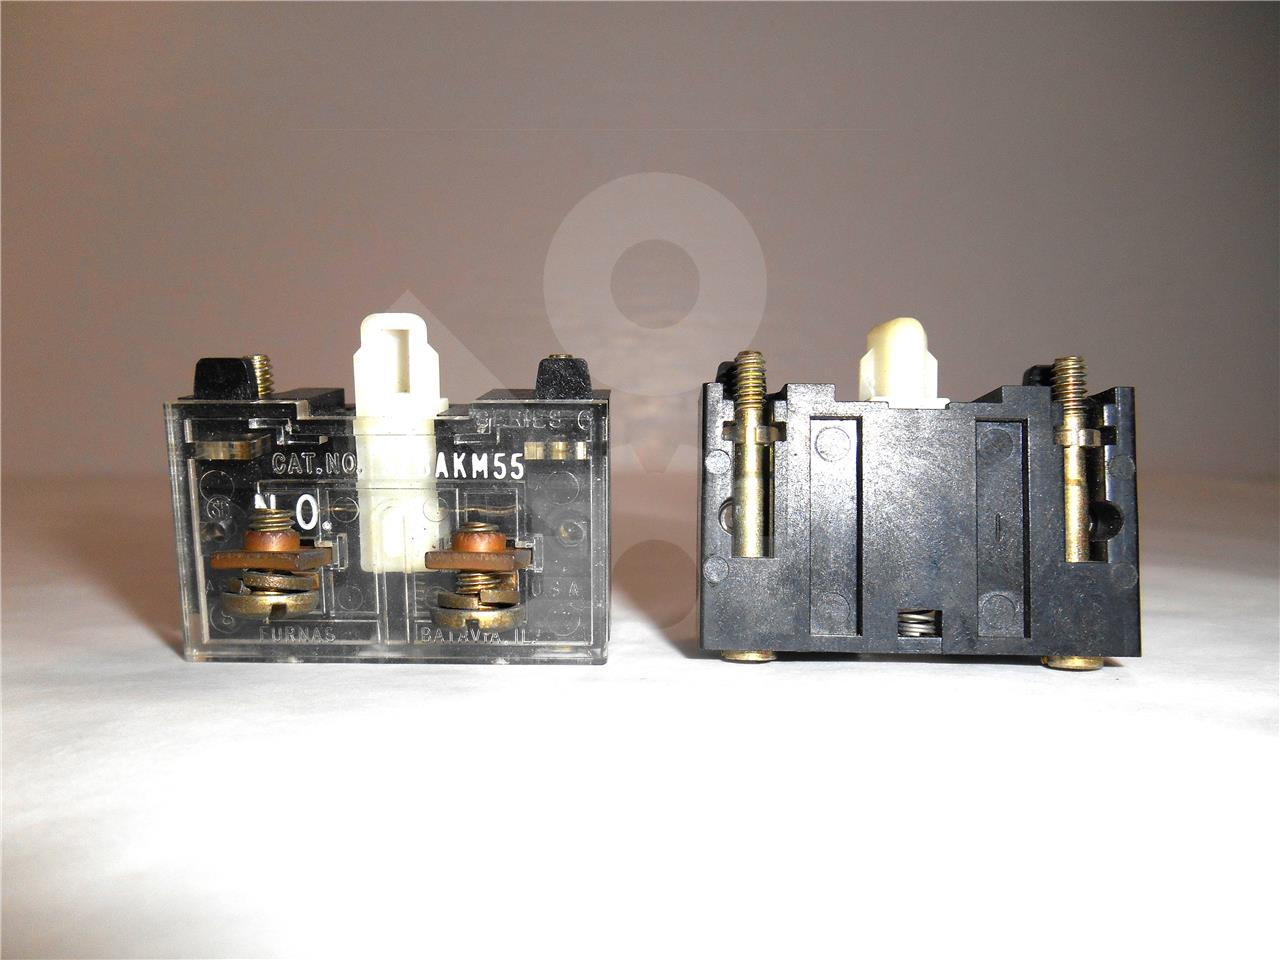 0282A7094P001 GE / General Electric CONTROL SWITCH 1NO FOR VB1 WITH ML-18 / ML-19 MECHANISM